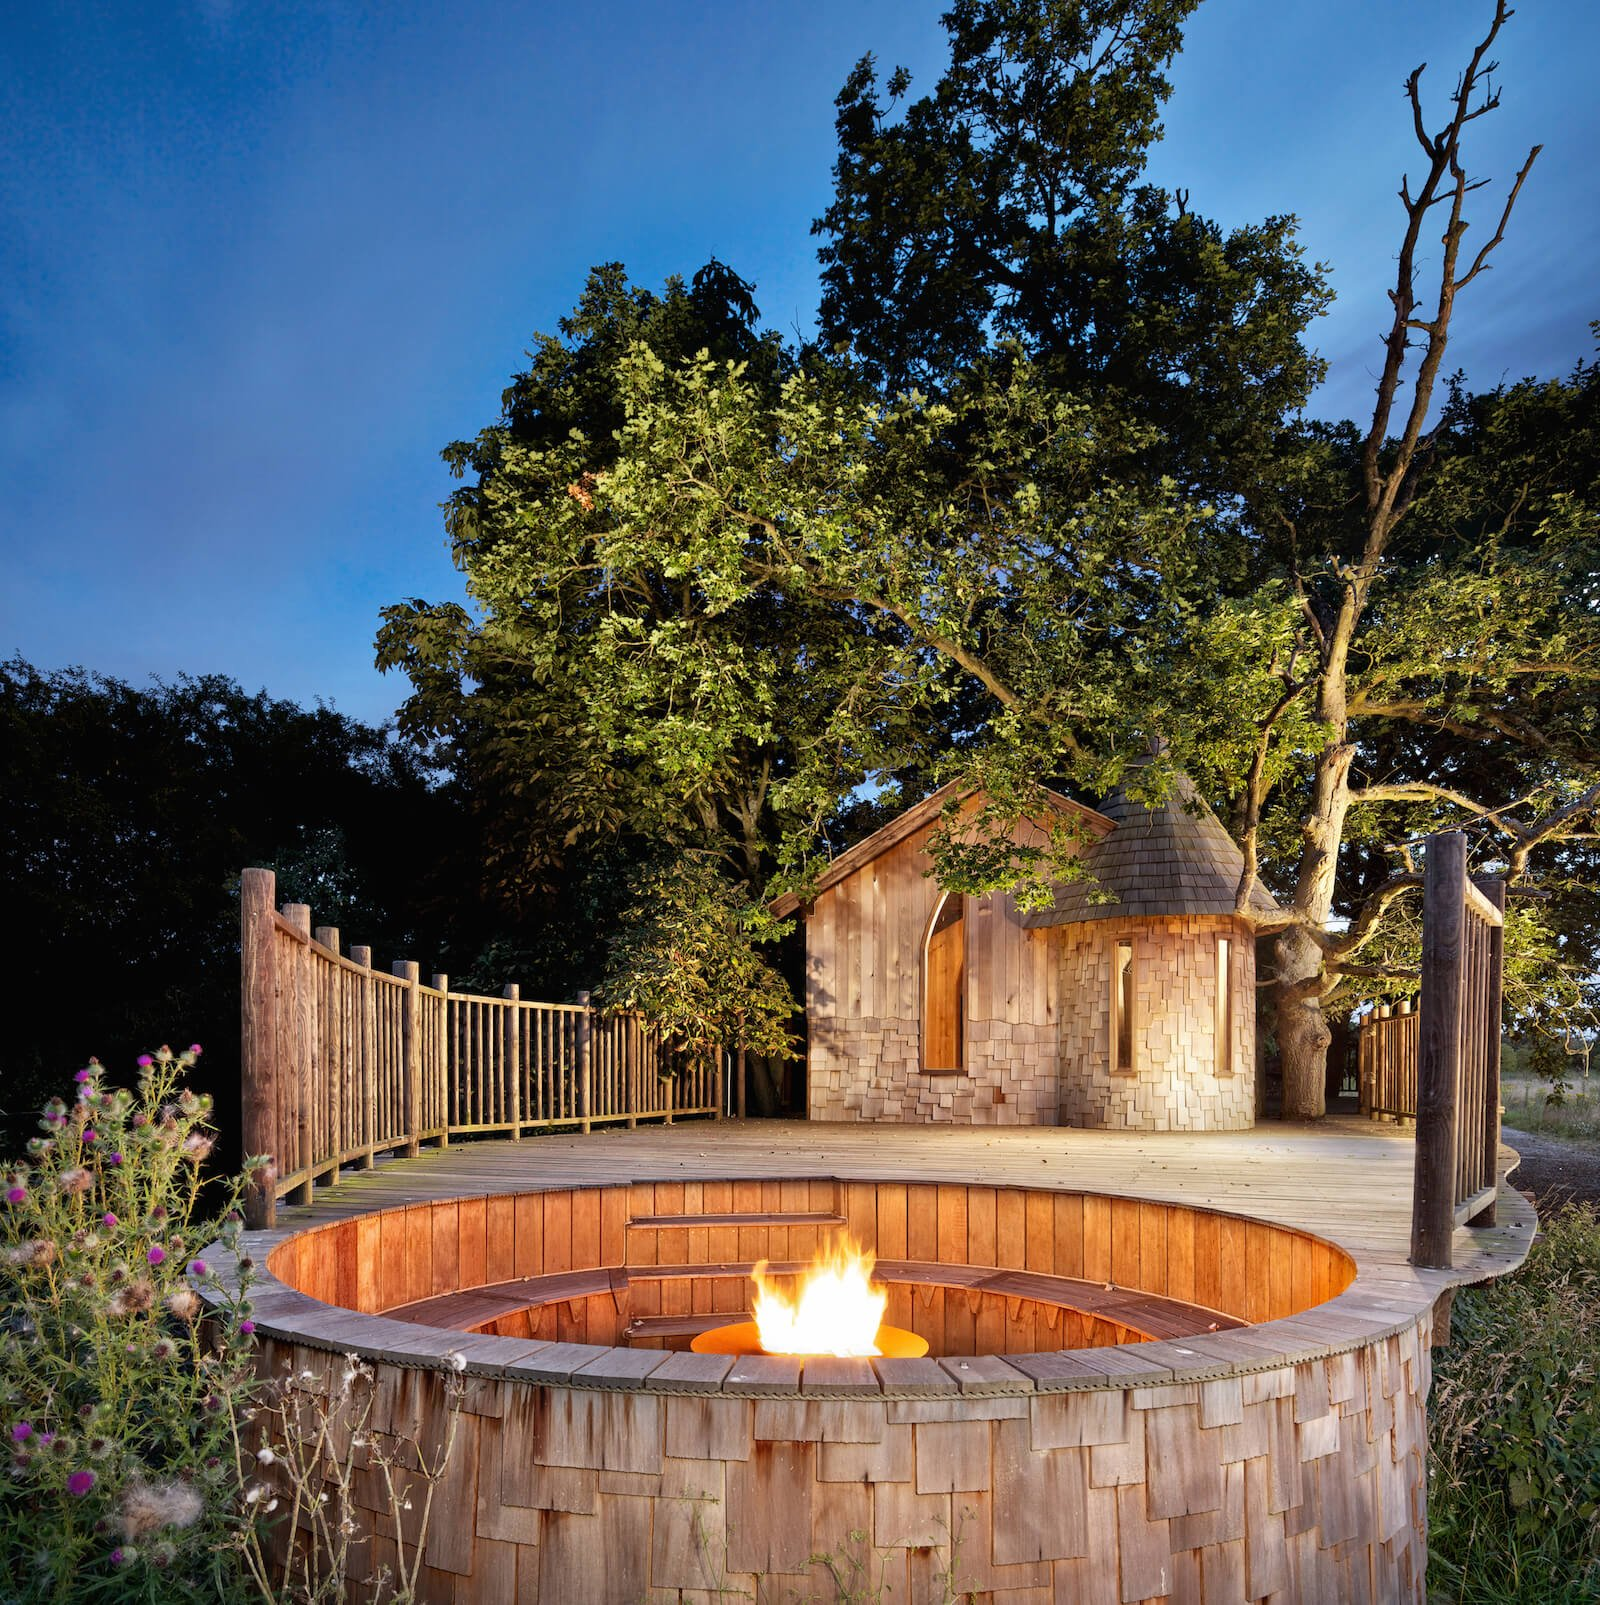 Finally, we leave you with this vision of the fire pit illuminated at night. The fencing gives way to this sunken conversation space, glowing beneath the trees.